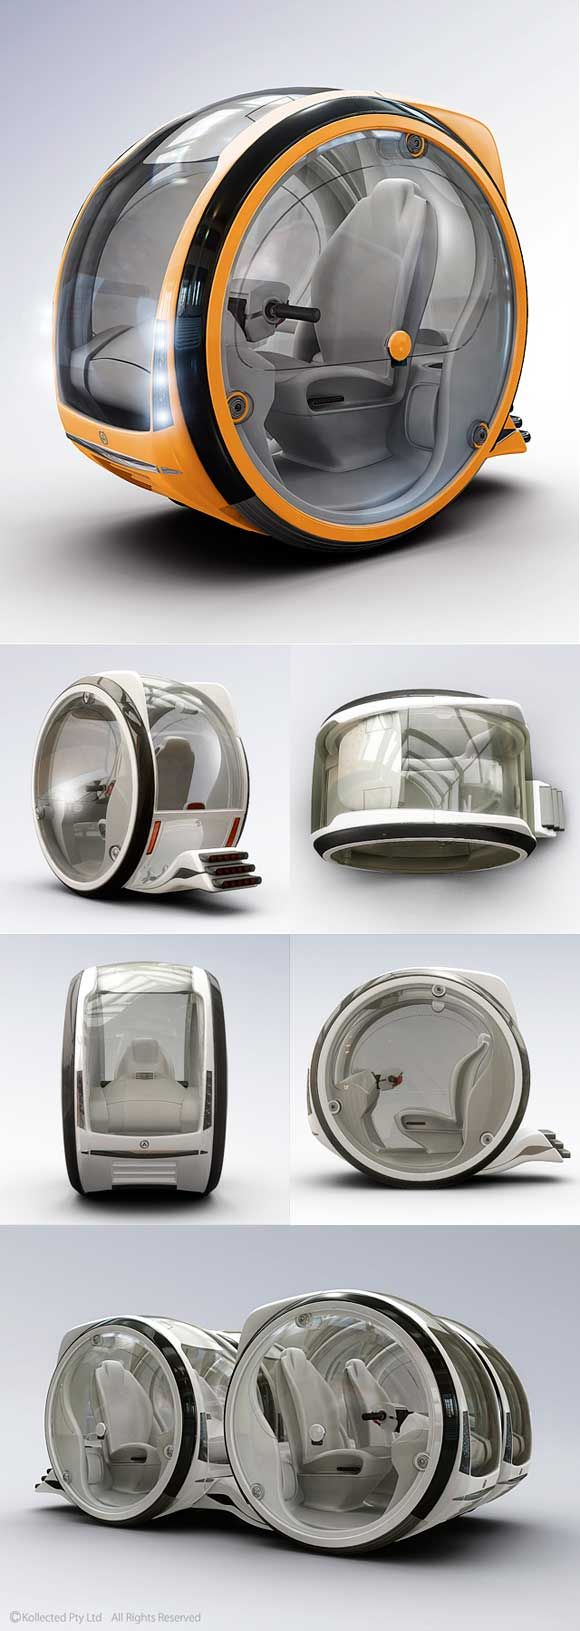 50 Awe-Inspiring Futuristic 3D Renderings by Nick Kaloterakis | MyCreativeDaddy